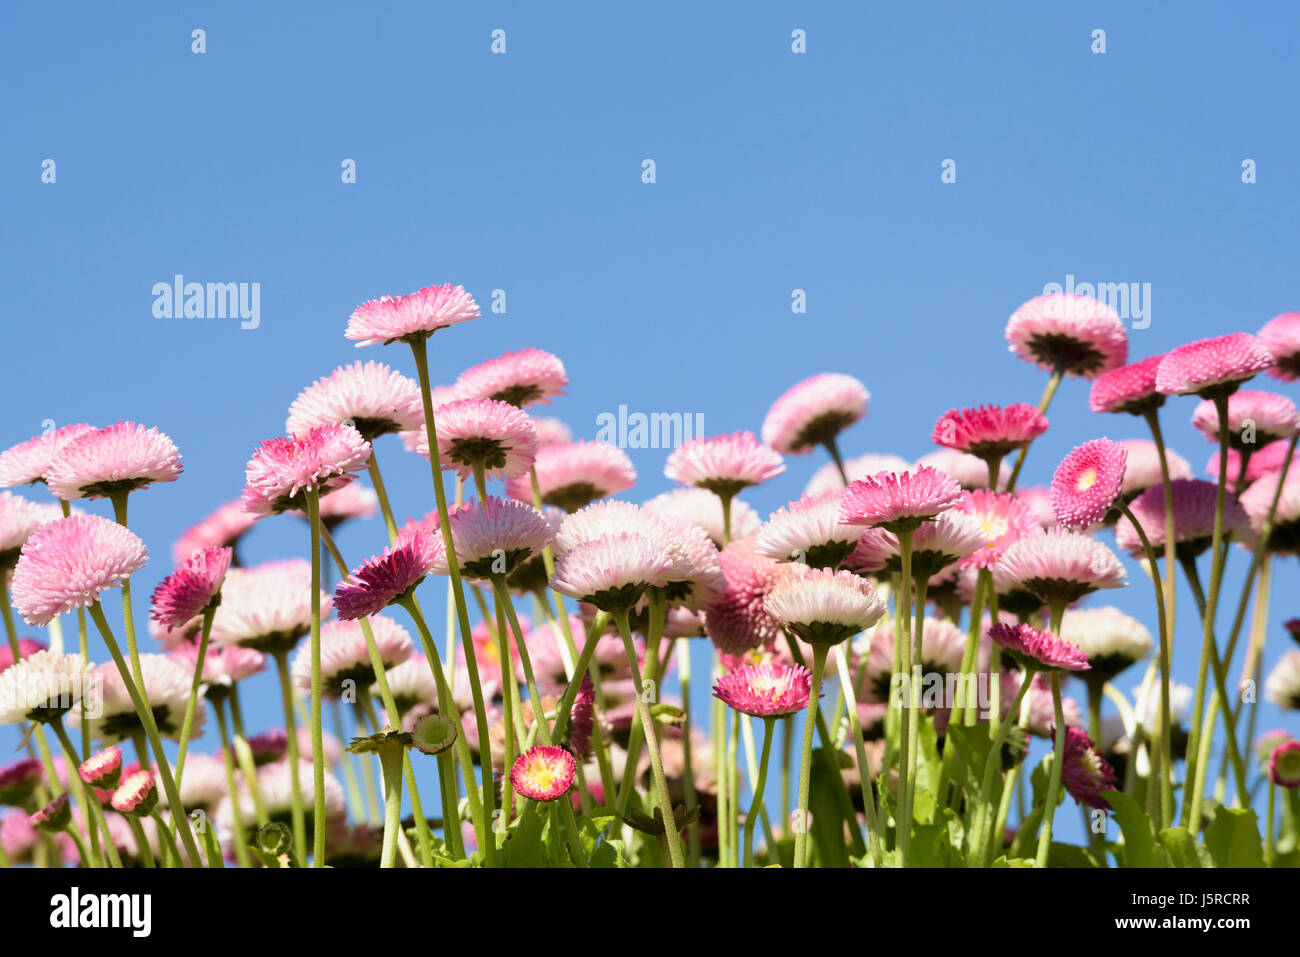 Daisy double daisy bellis perennis side view of pink flowers daisy double daisy bellis perennis side view of pink flowers growing outdoor with blue sky behind izmirmasajfo Image collections